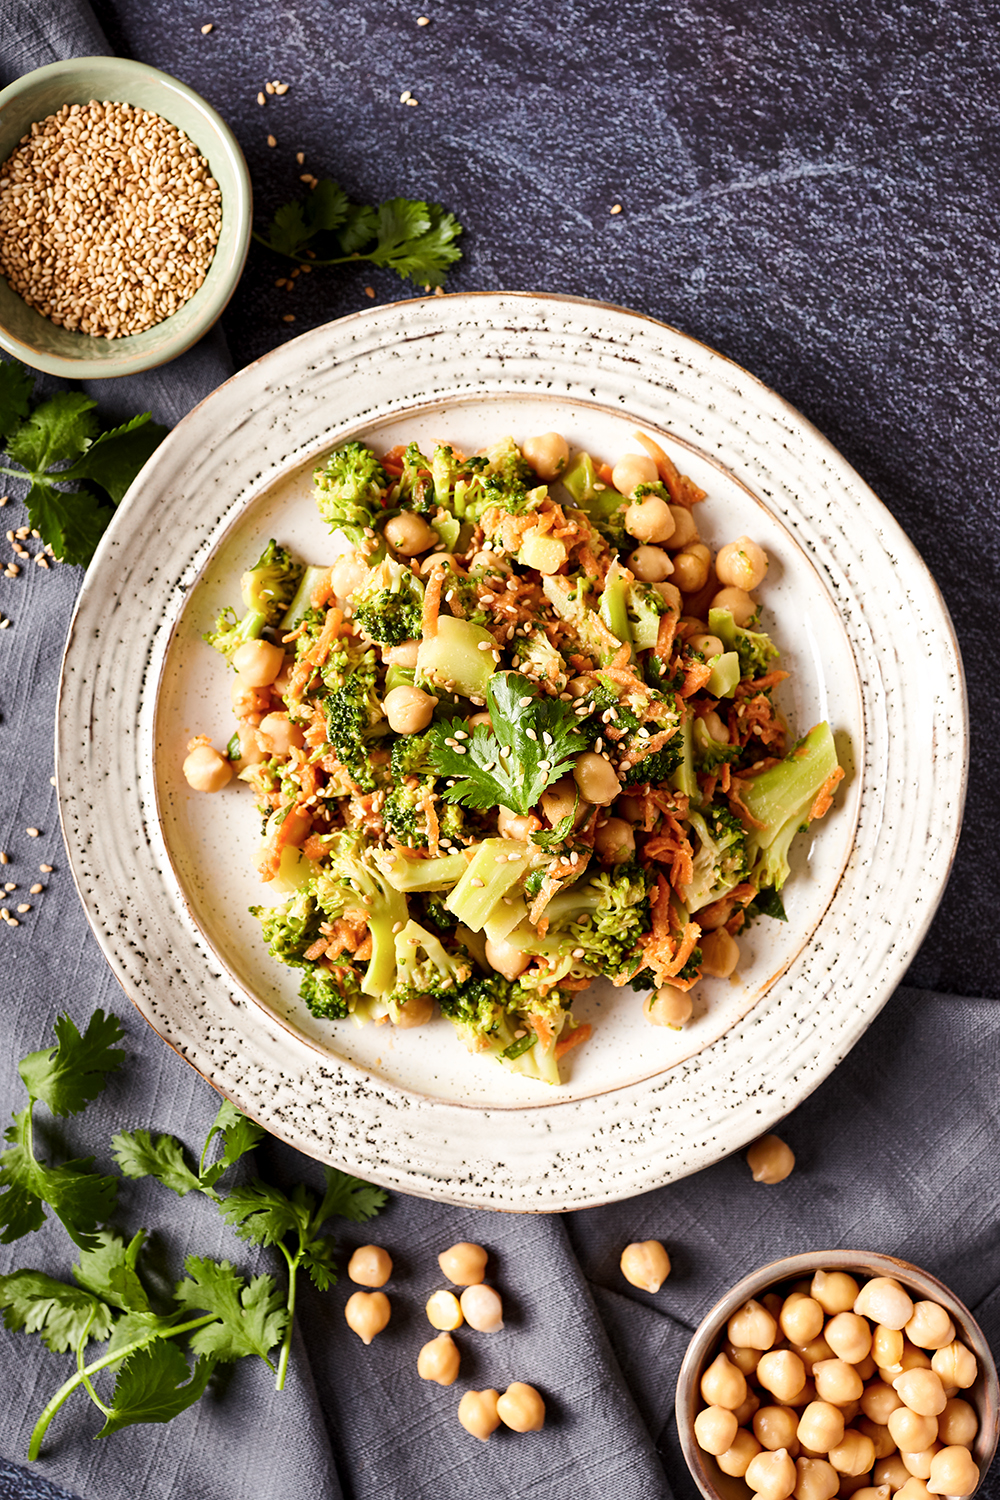 Broccolis and carrot salad with peanut and sesame dressing